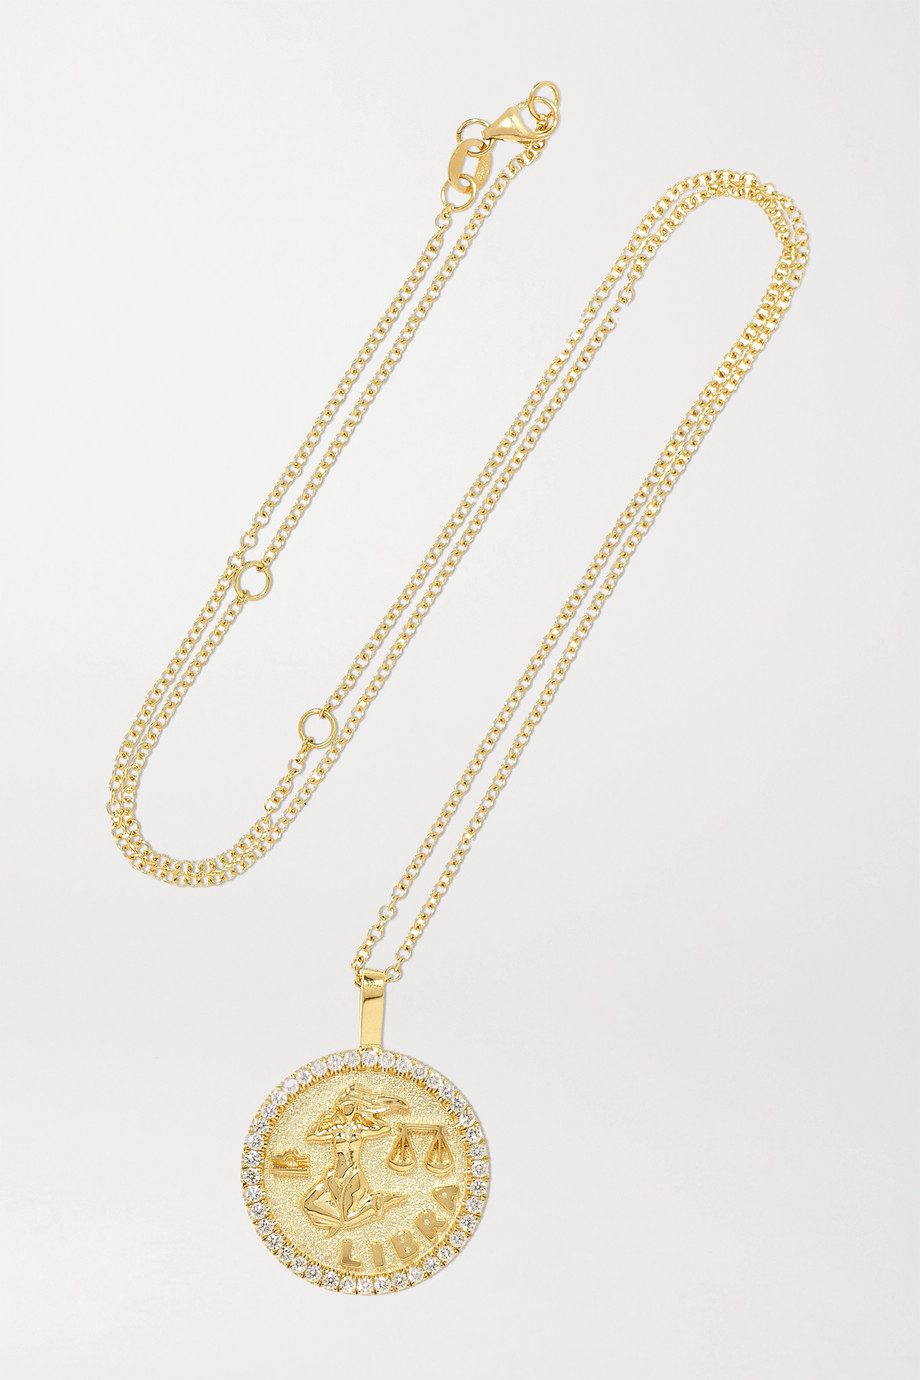 Anita Ko Zodiac large 18-karat gold diamond necklace